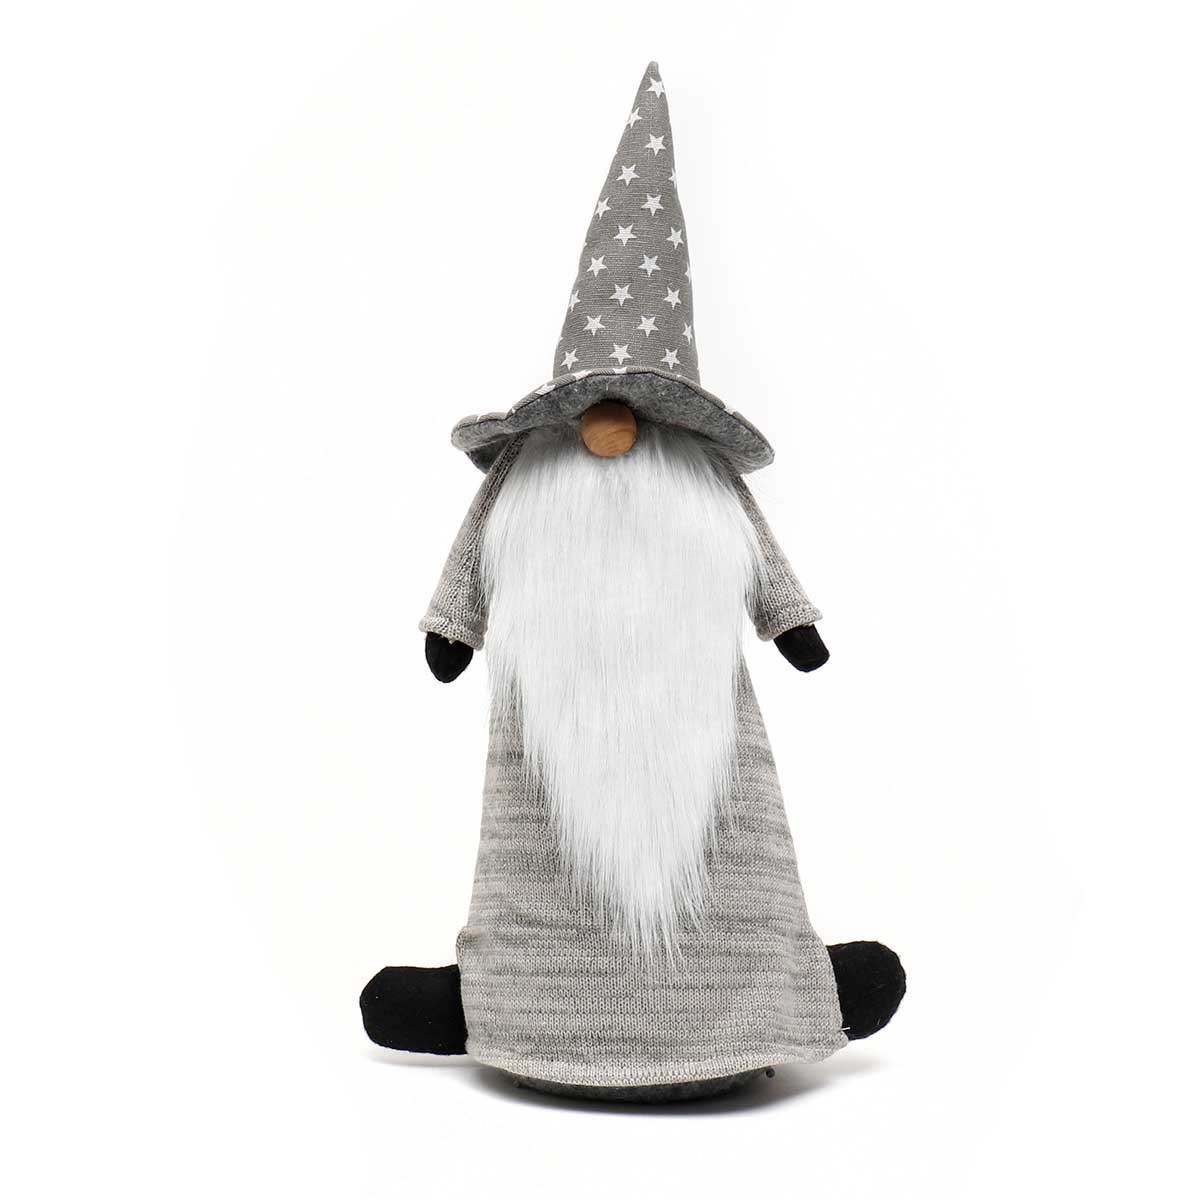 WIZARD GNOME WITH STAR HAT AND